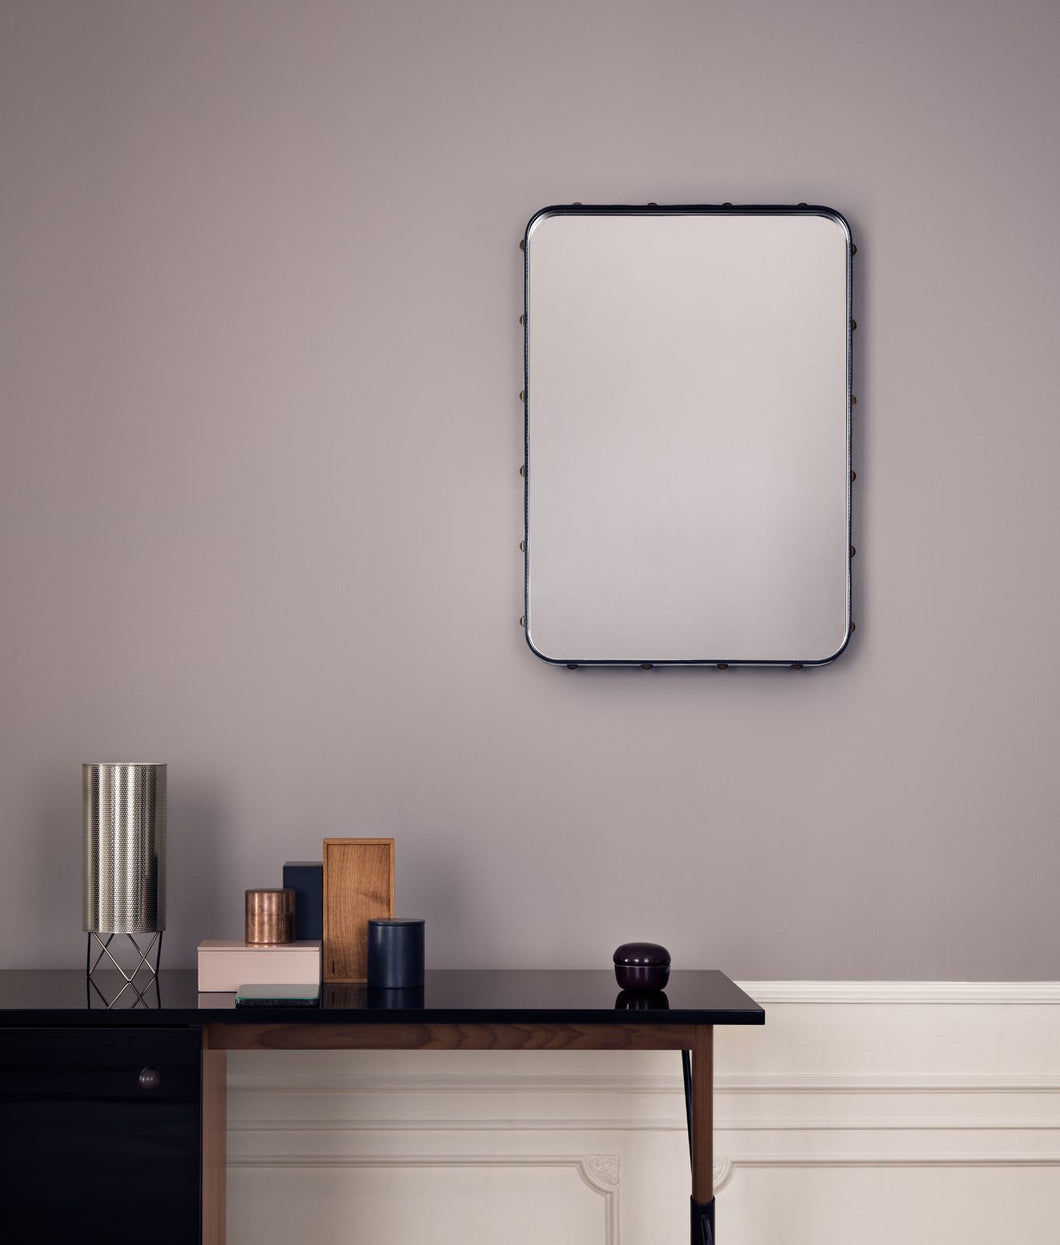 Gubi Adnet Rectangulaire Wall Mirror 70x50 Black